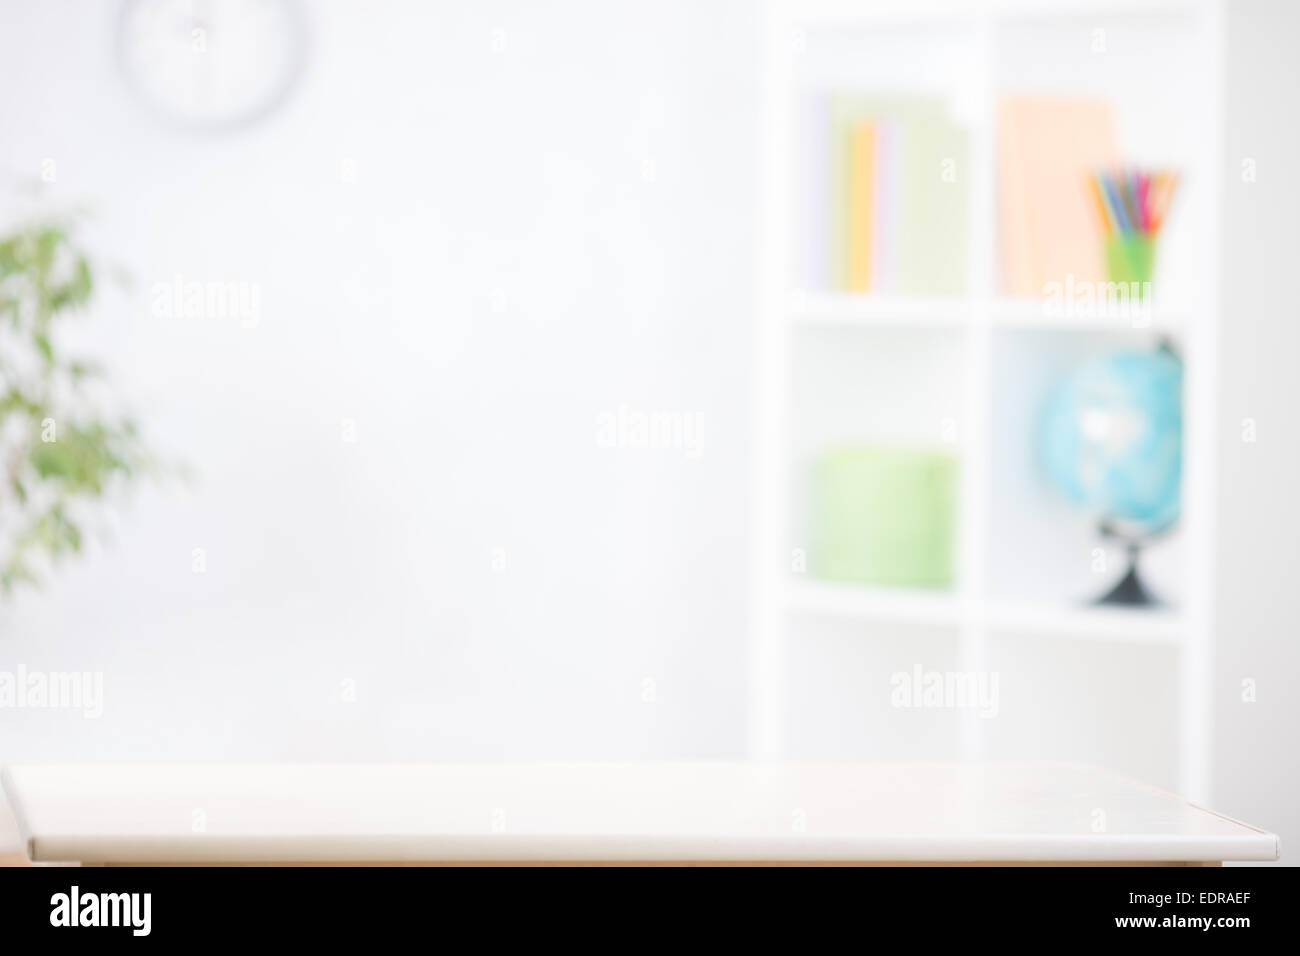 nursery room blurred background with writting desk - Stock Image